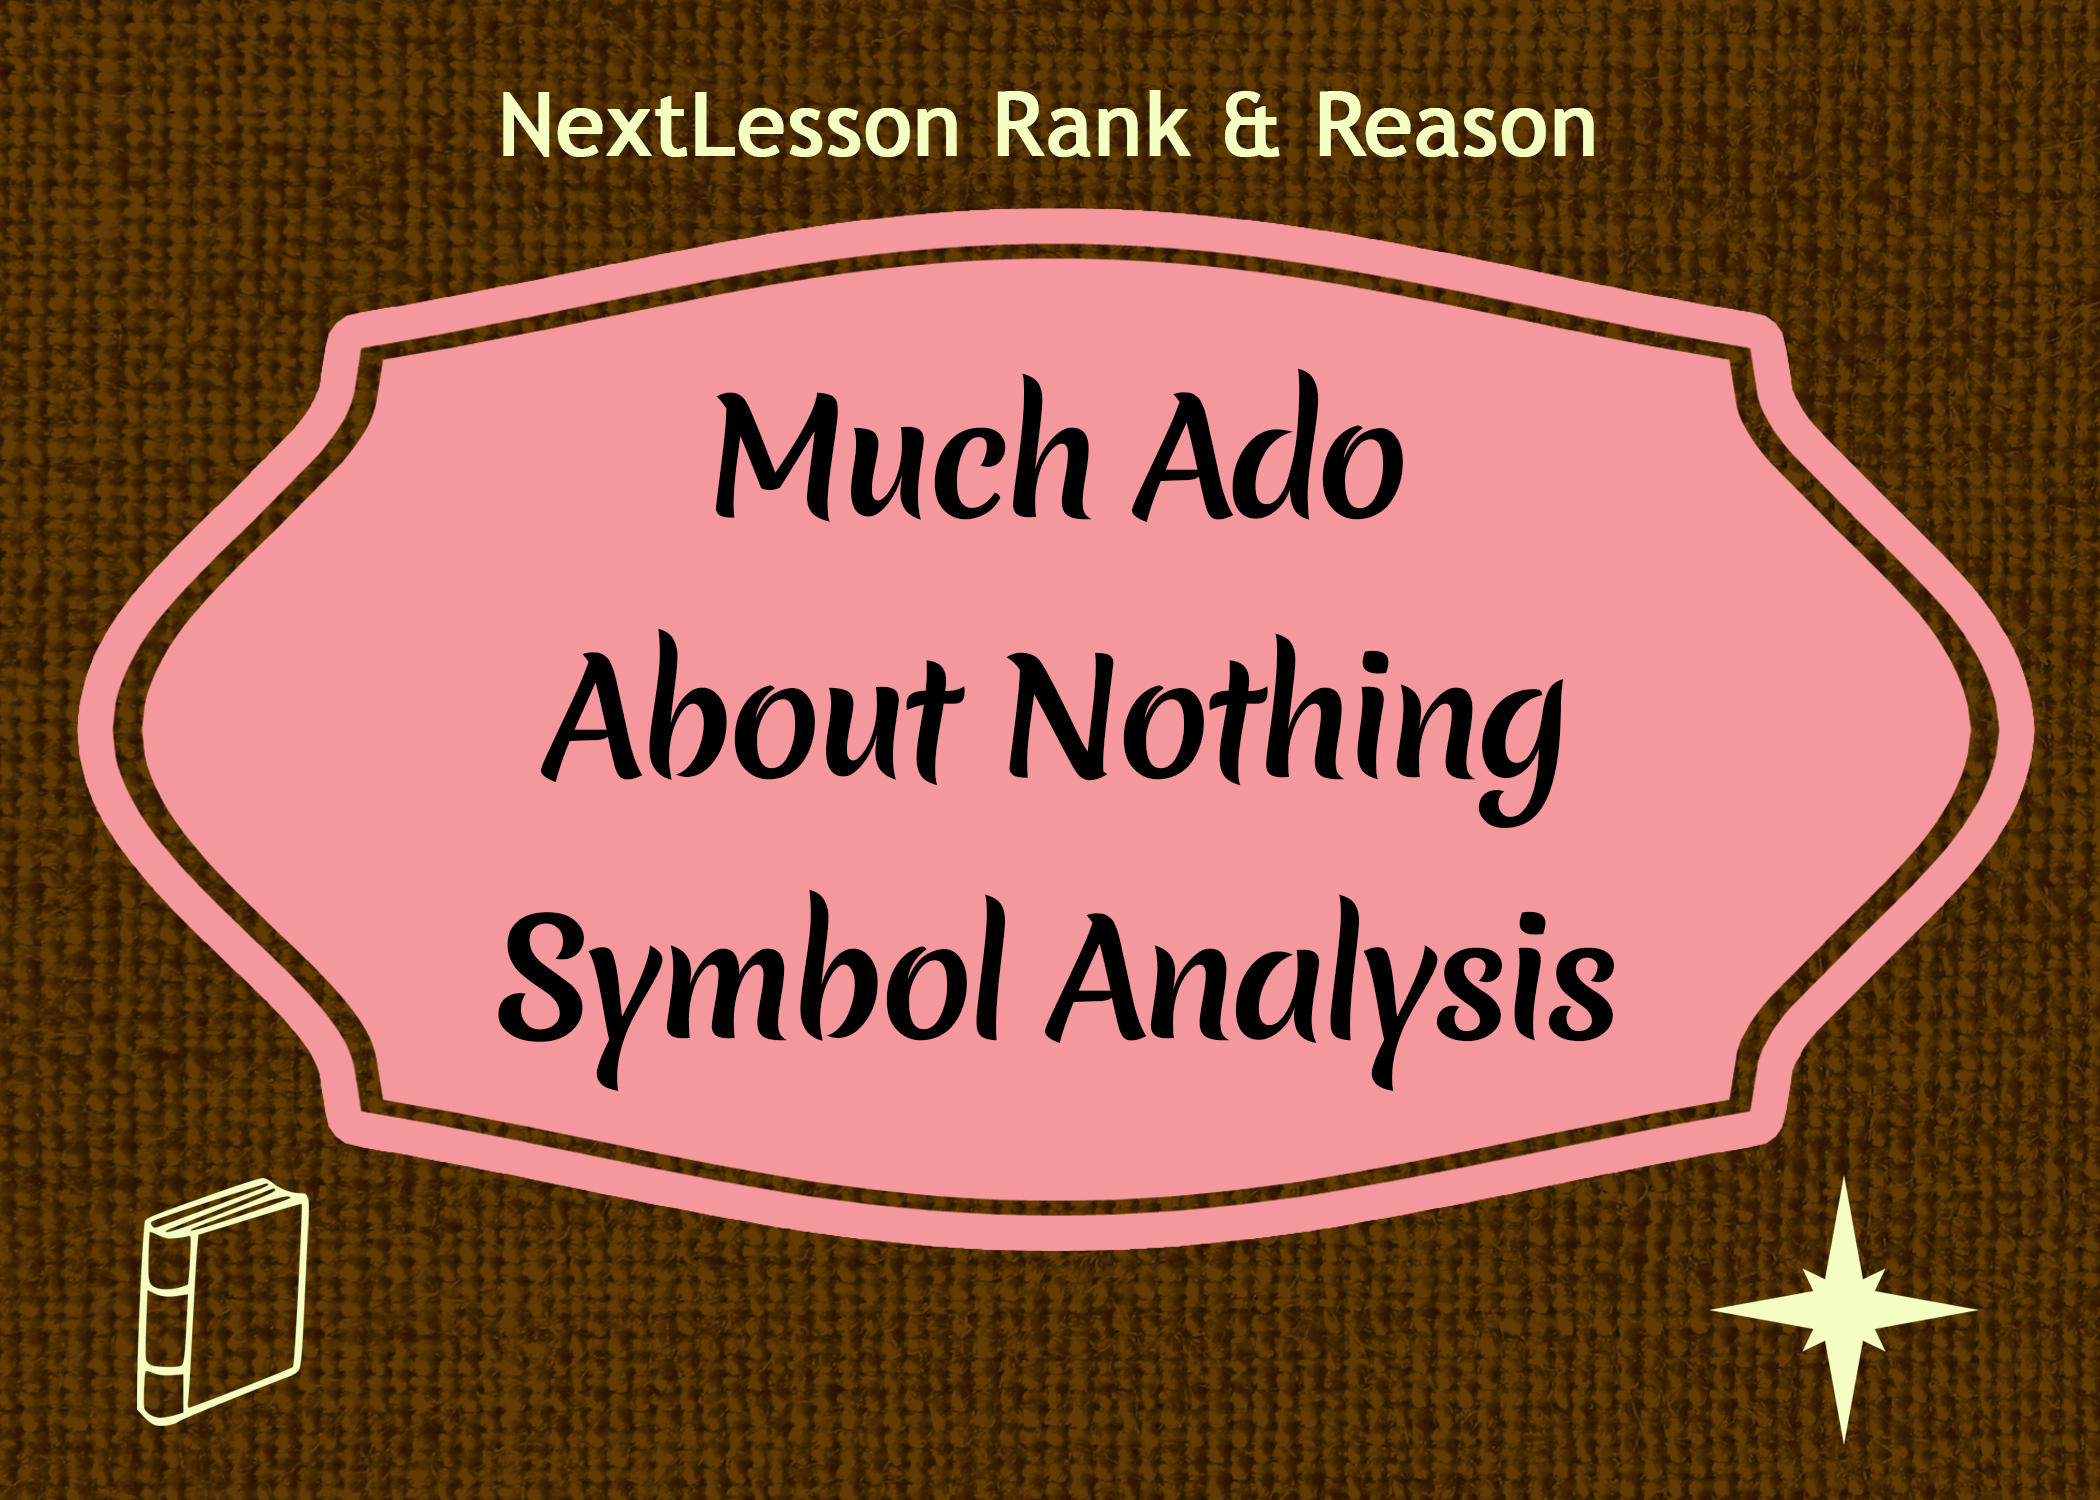 essay on much ado about nothing The following paper topics, each with a sample outline, are designed to test your understanding of much ado about nothing each deals with the play as a whole and requires analysis of important themes and literary devices.